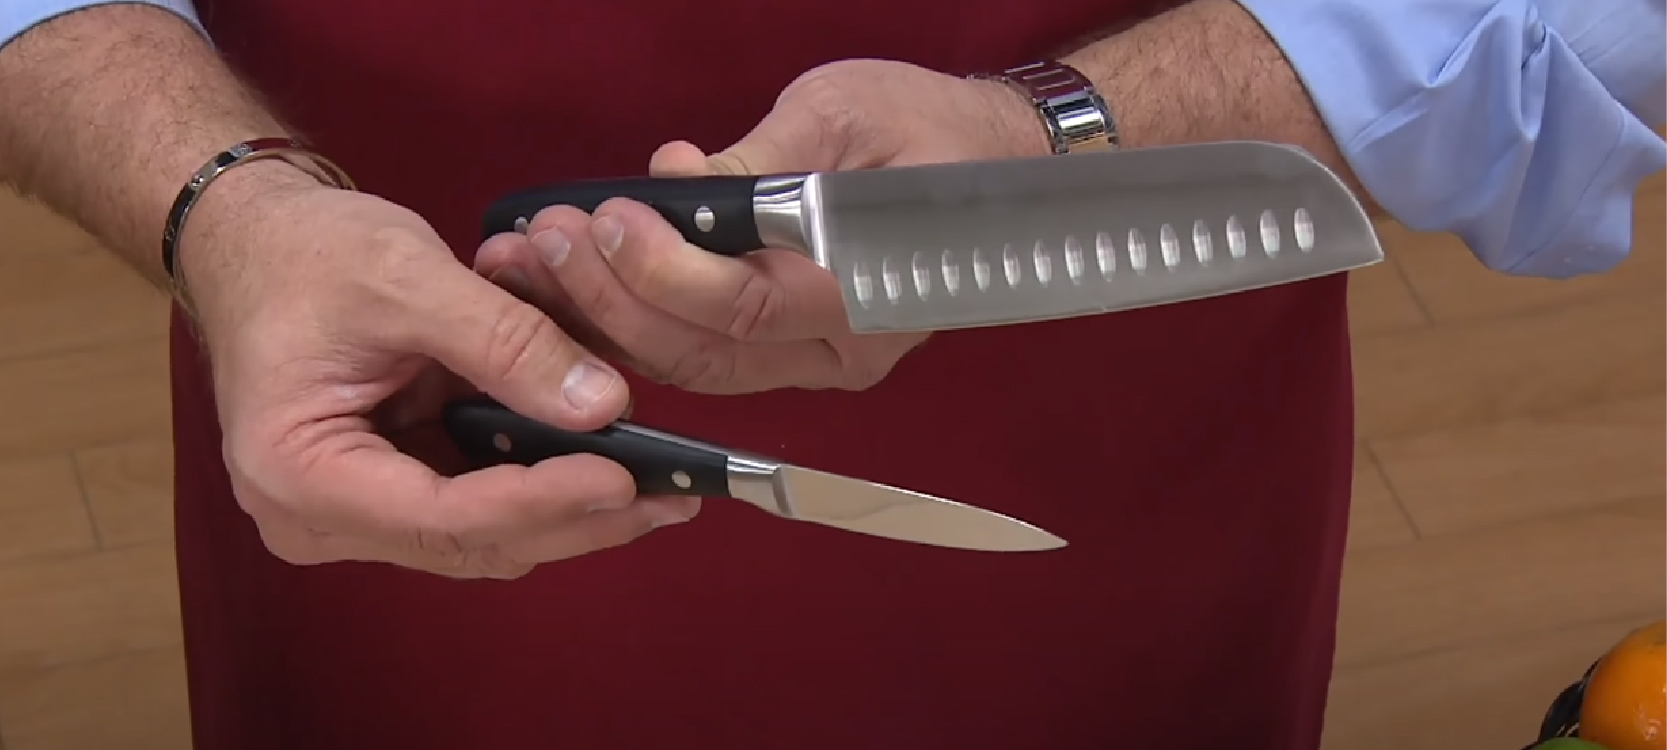 a chef holding the Farberware knives set